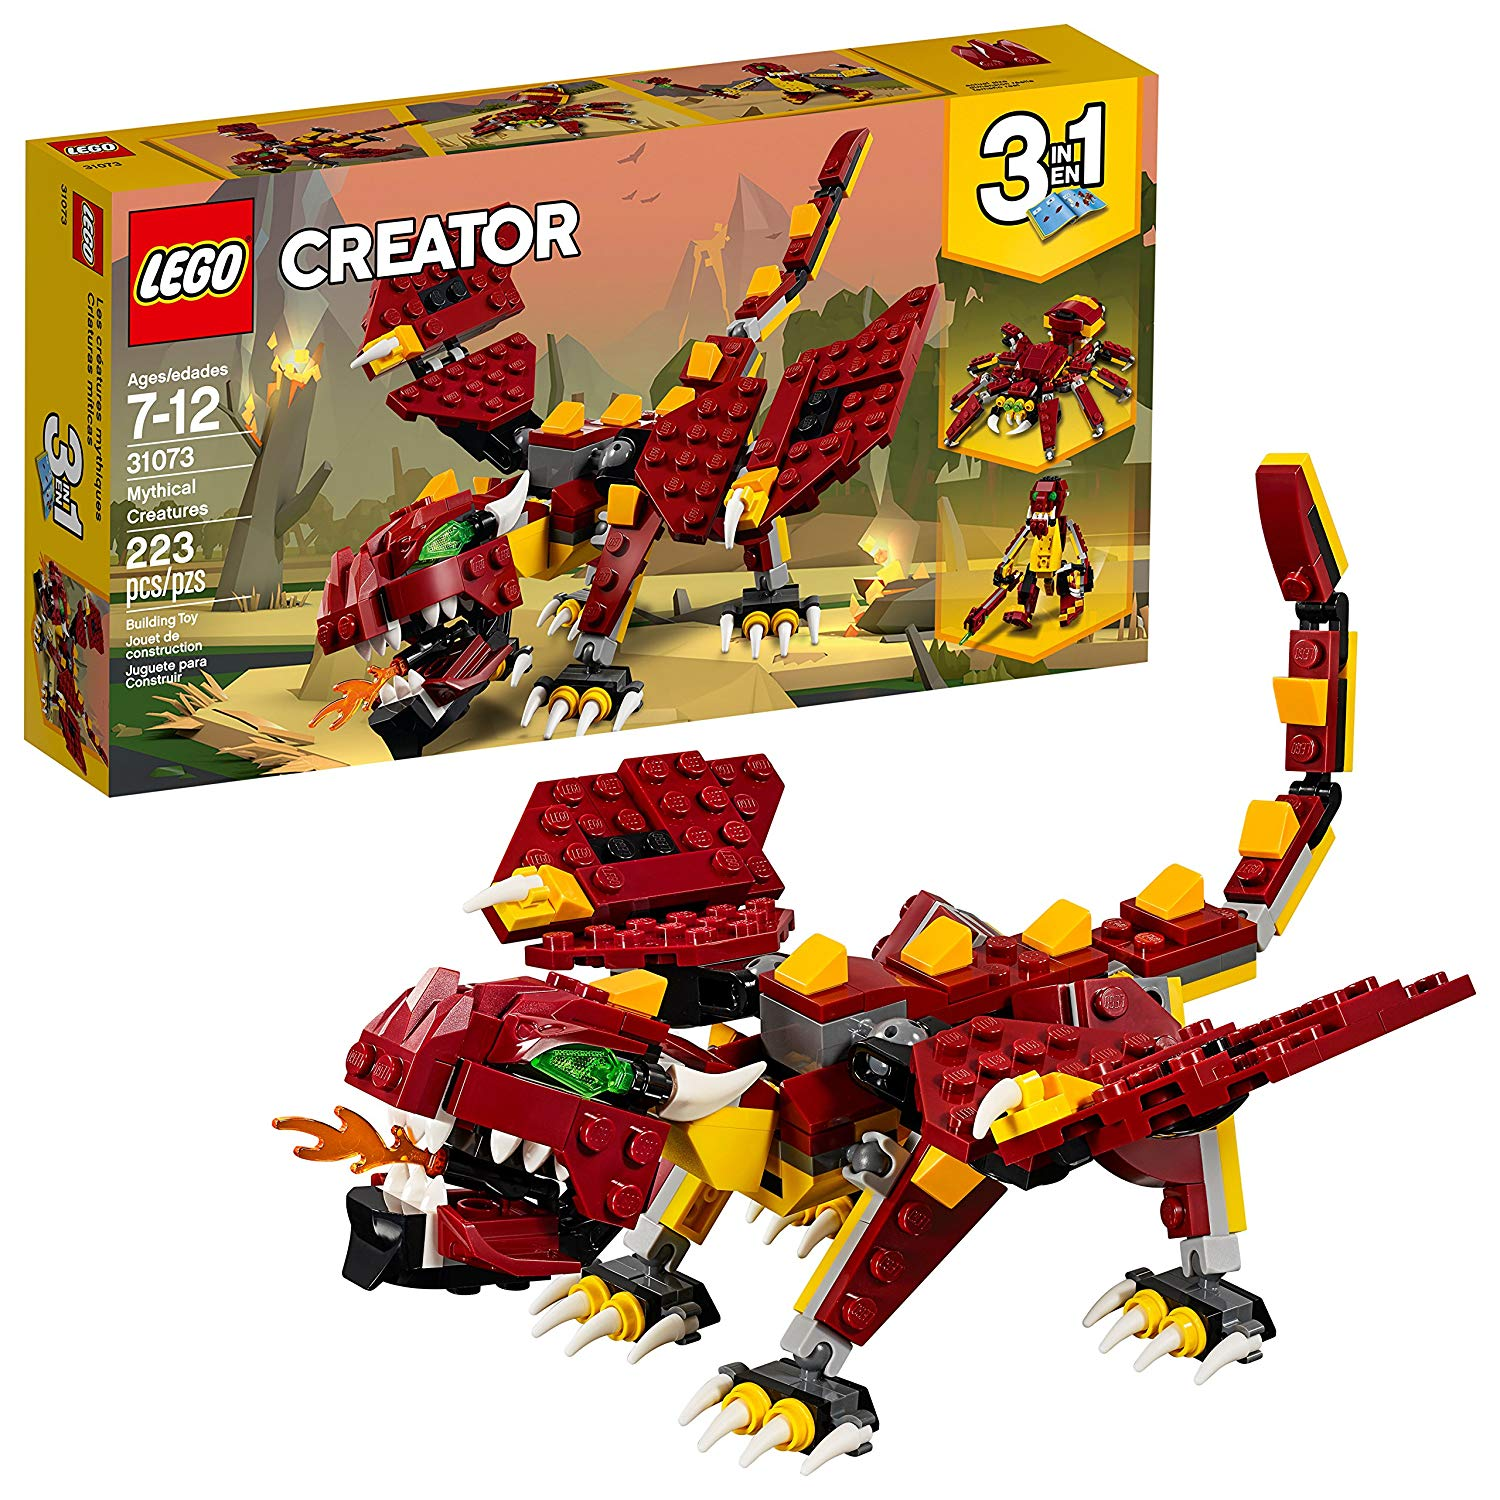 10 Of The Best Dragon Toys For Kids Reviews In 2021 3